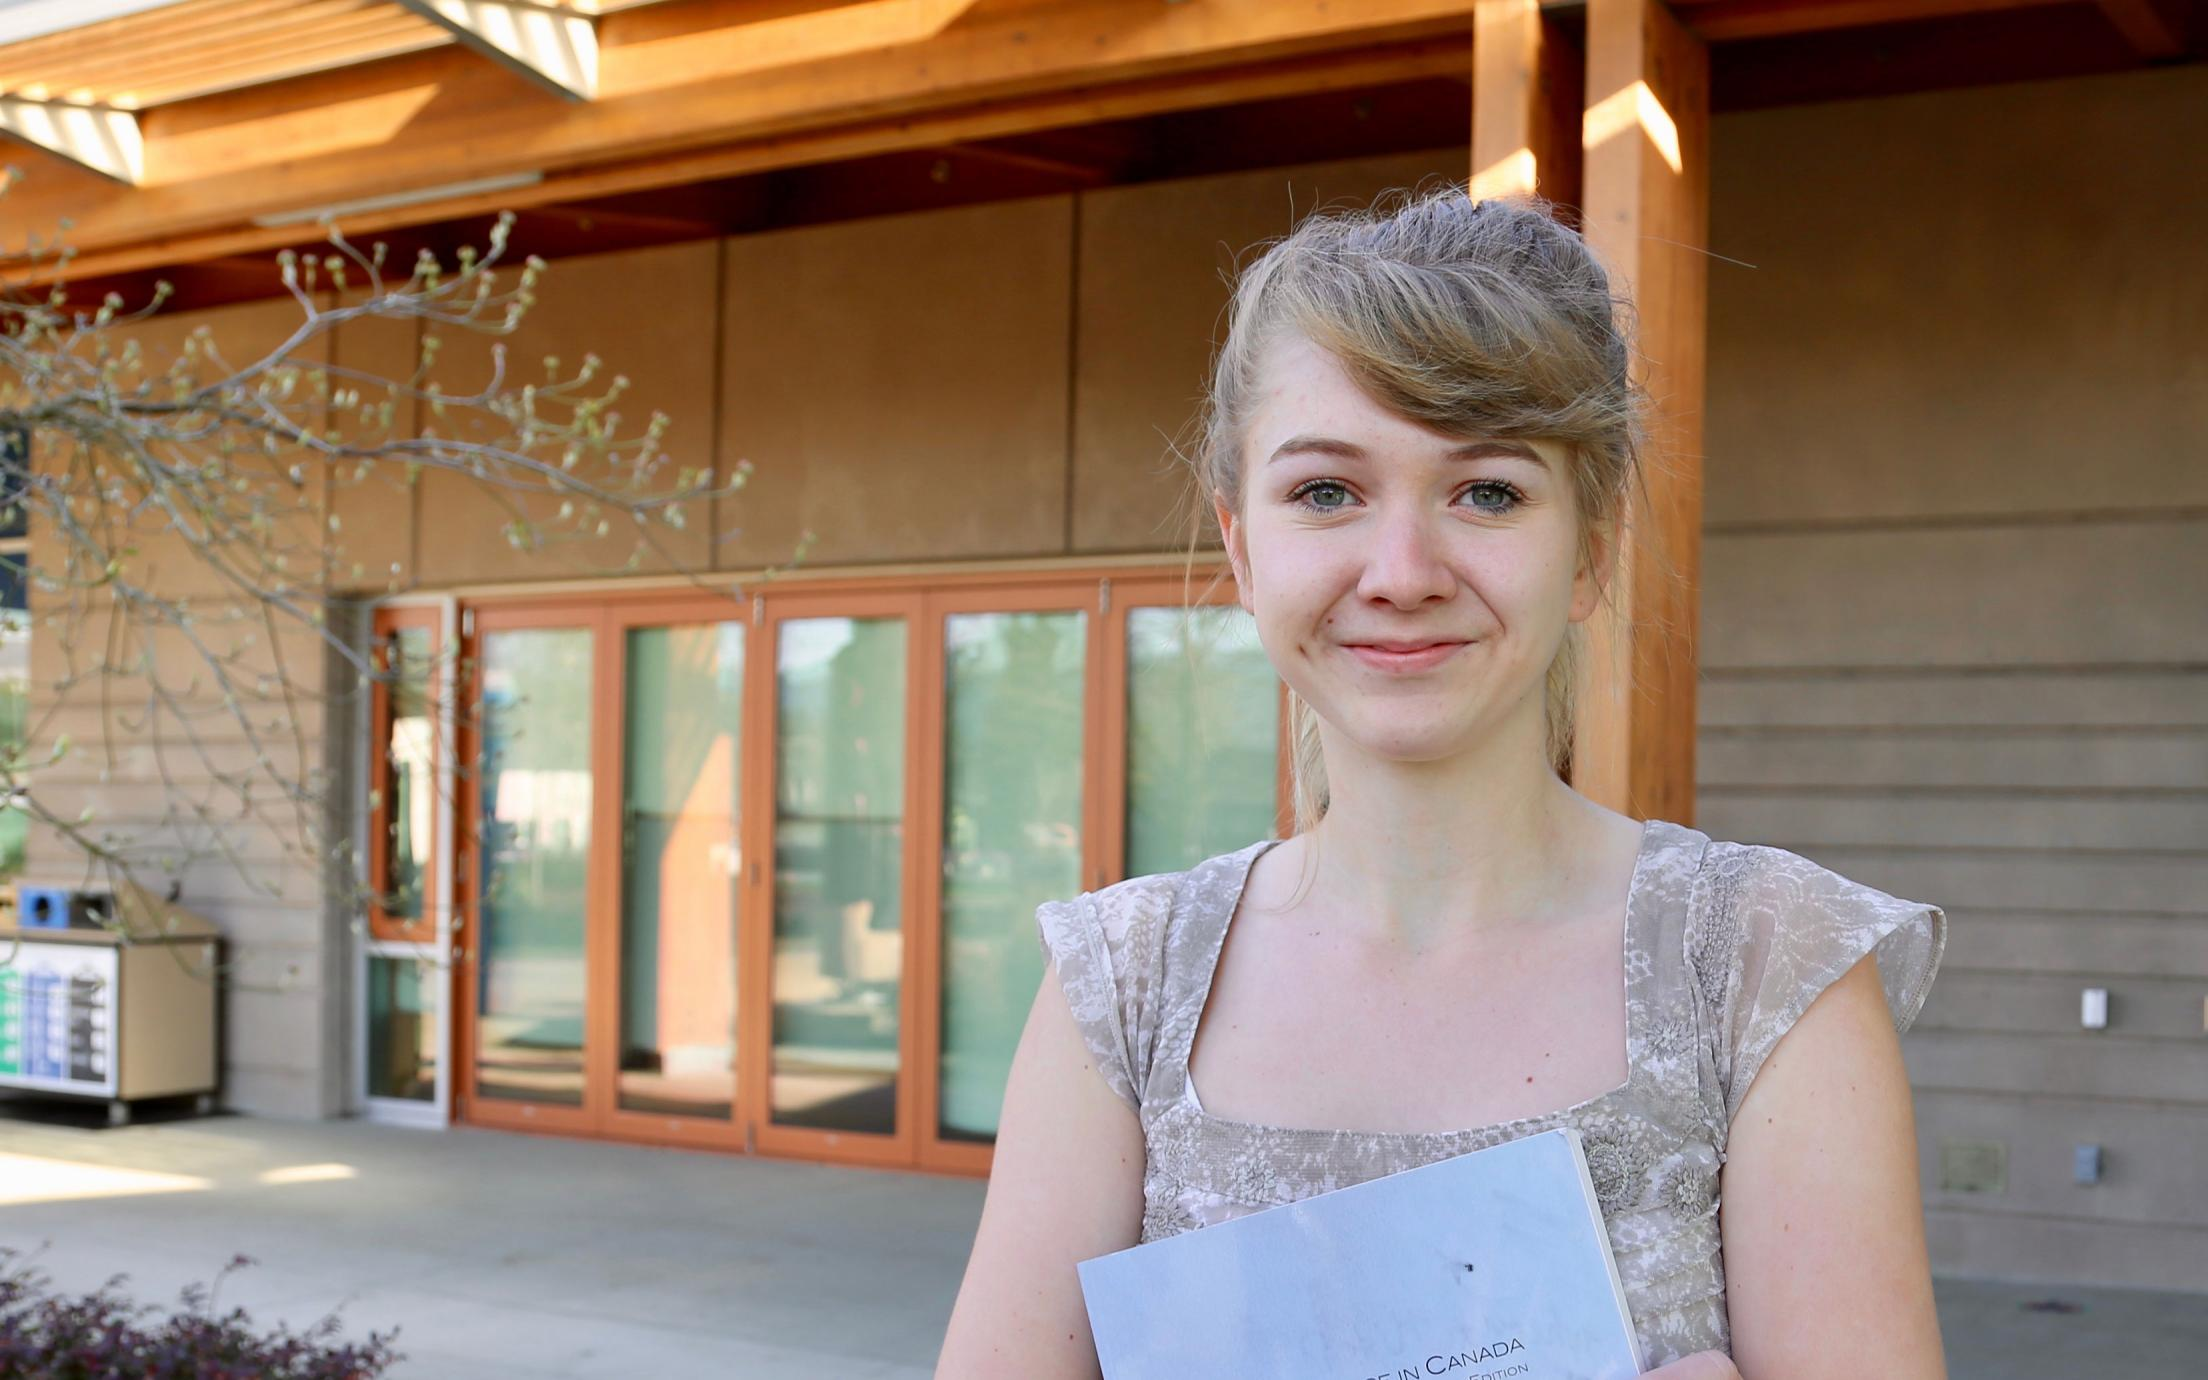 VIU Cowichan Campus Student in Courtyard